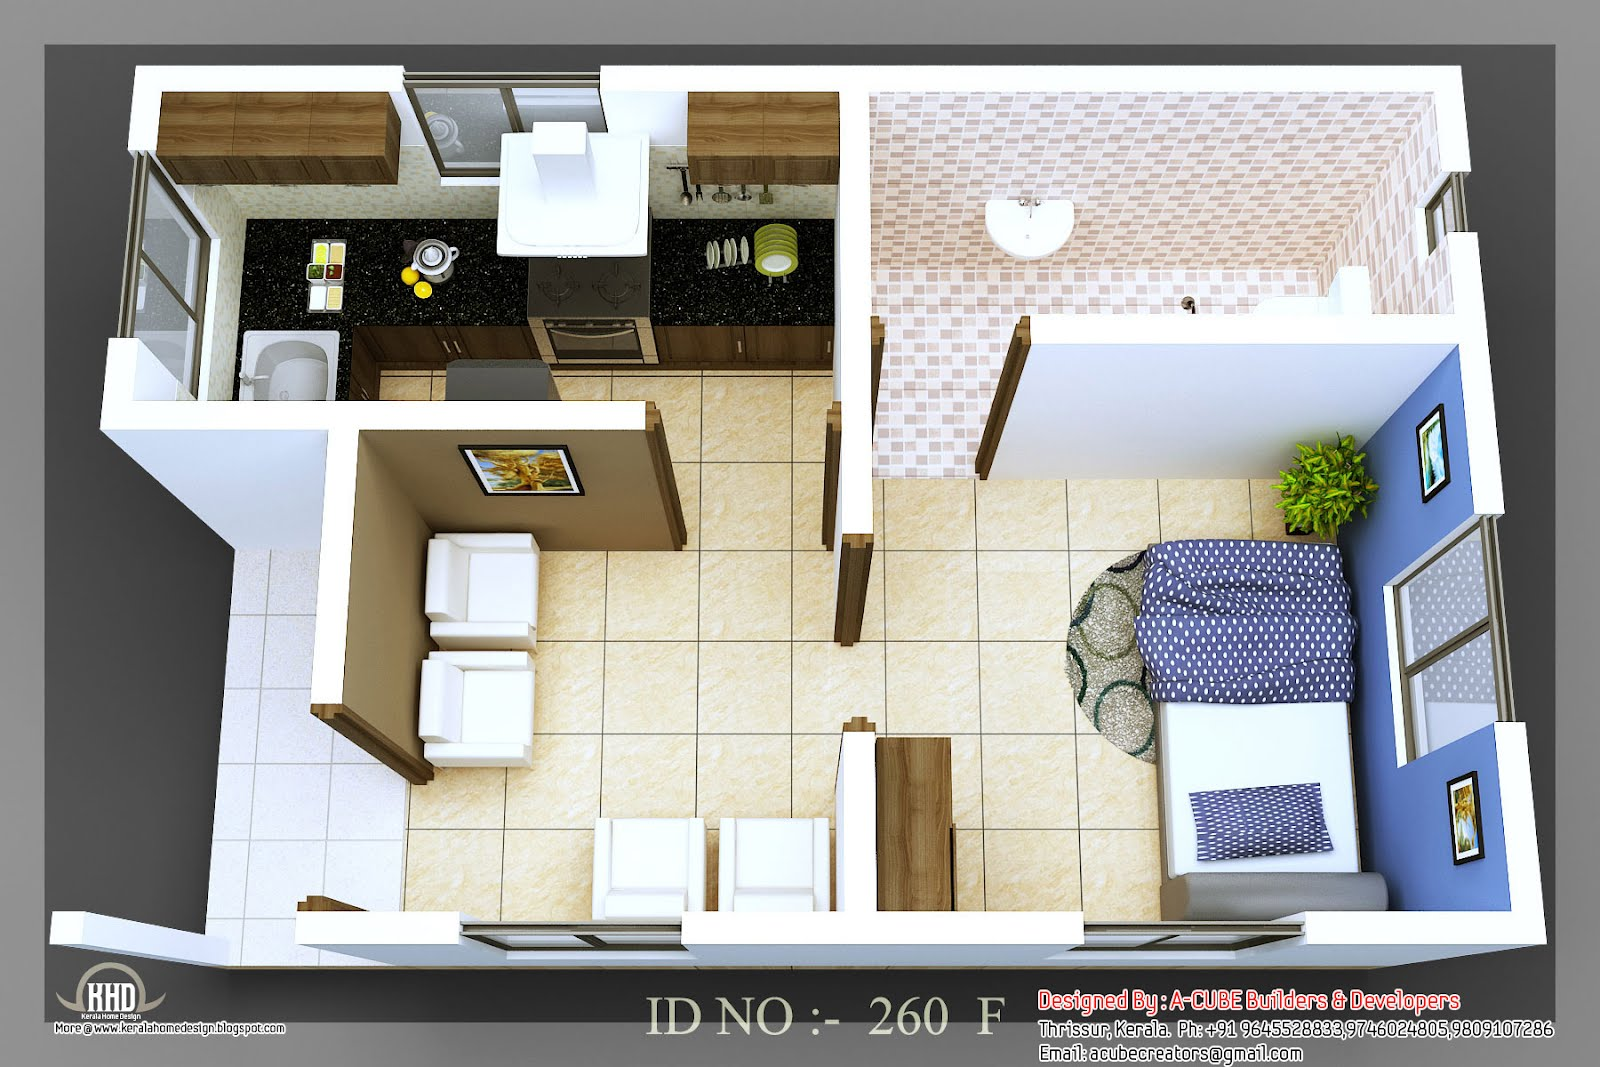 For More Information about this isometric small house plans